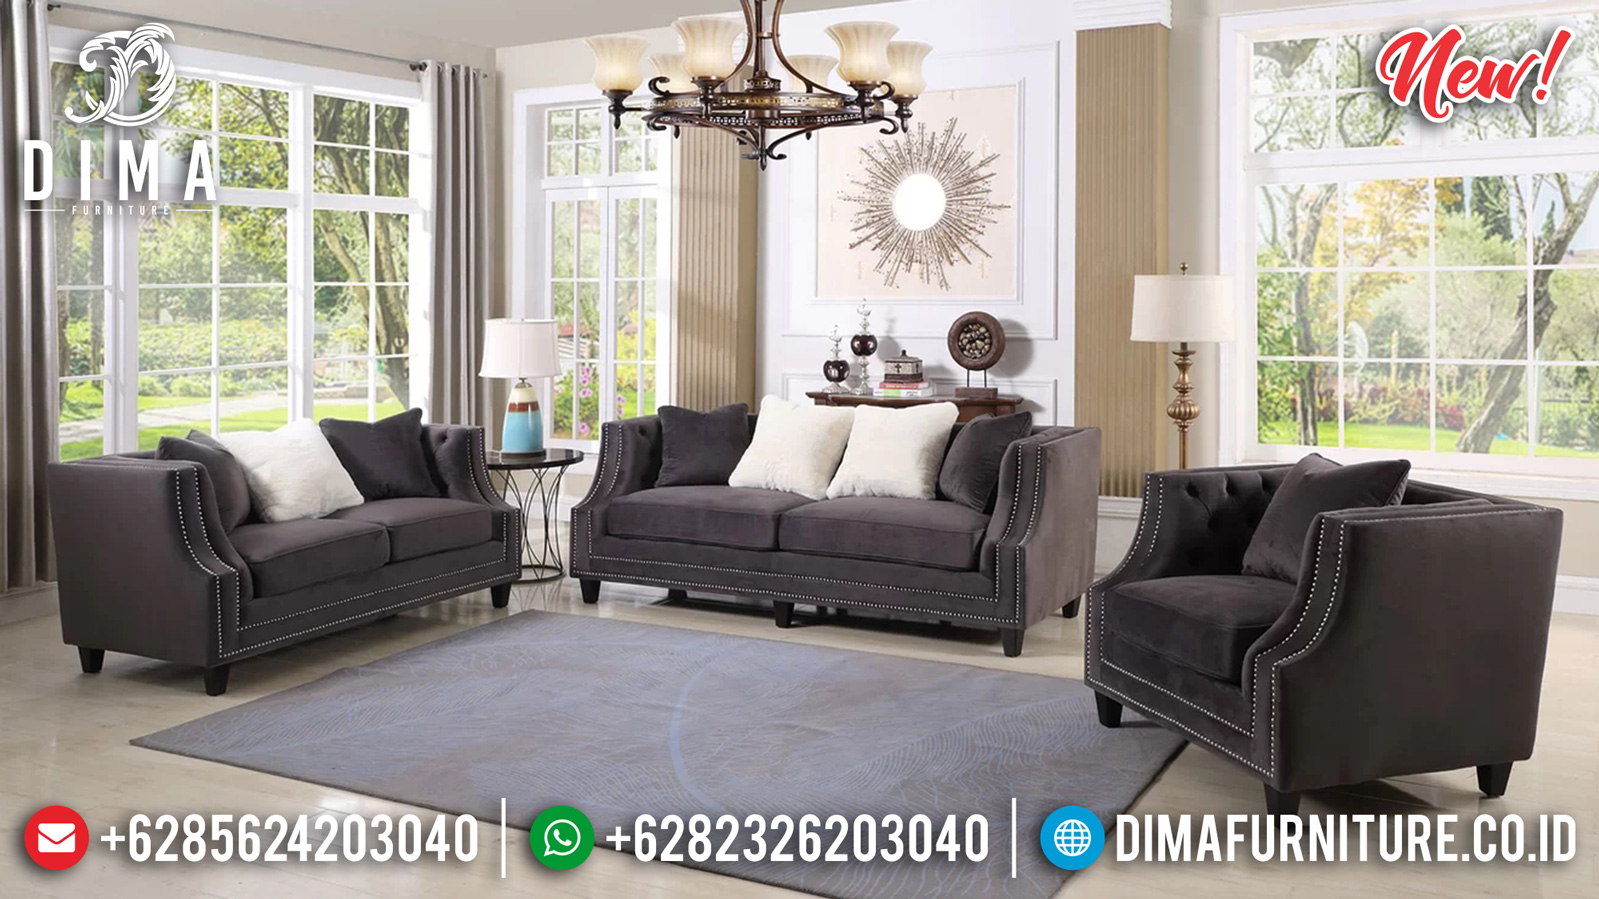 Best Sale Sofa Tamu Minimalis Jepara Luxury Design Mebel Jepara TTJ-1259